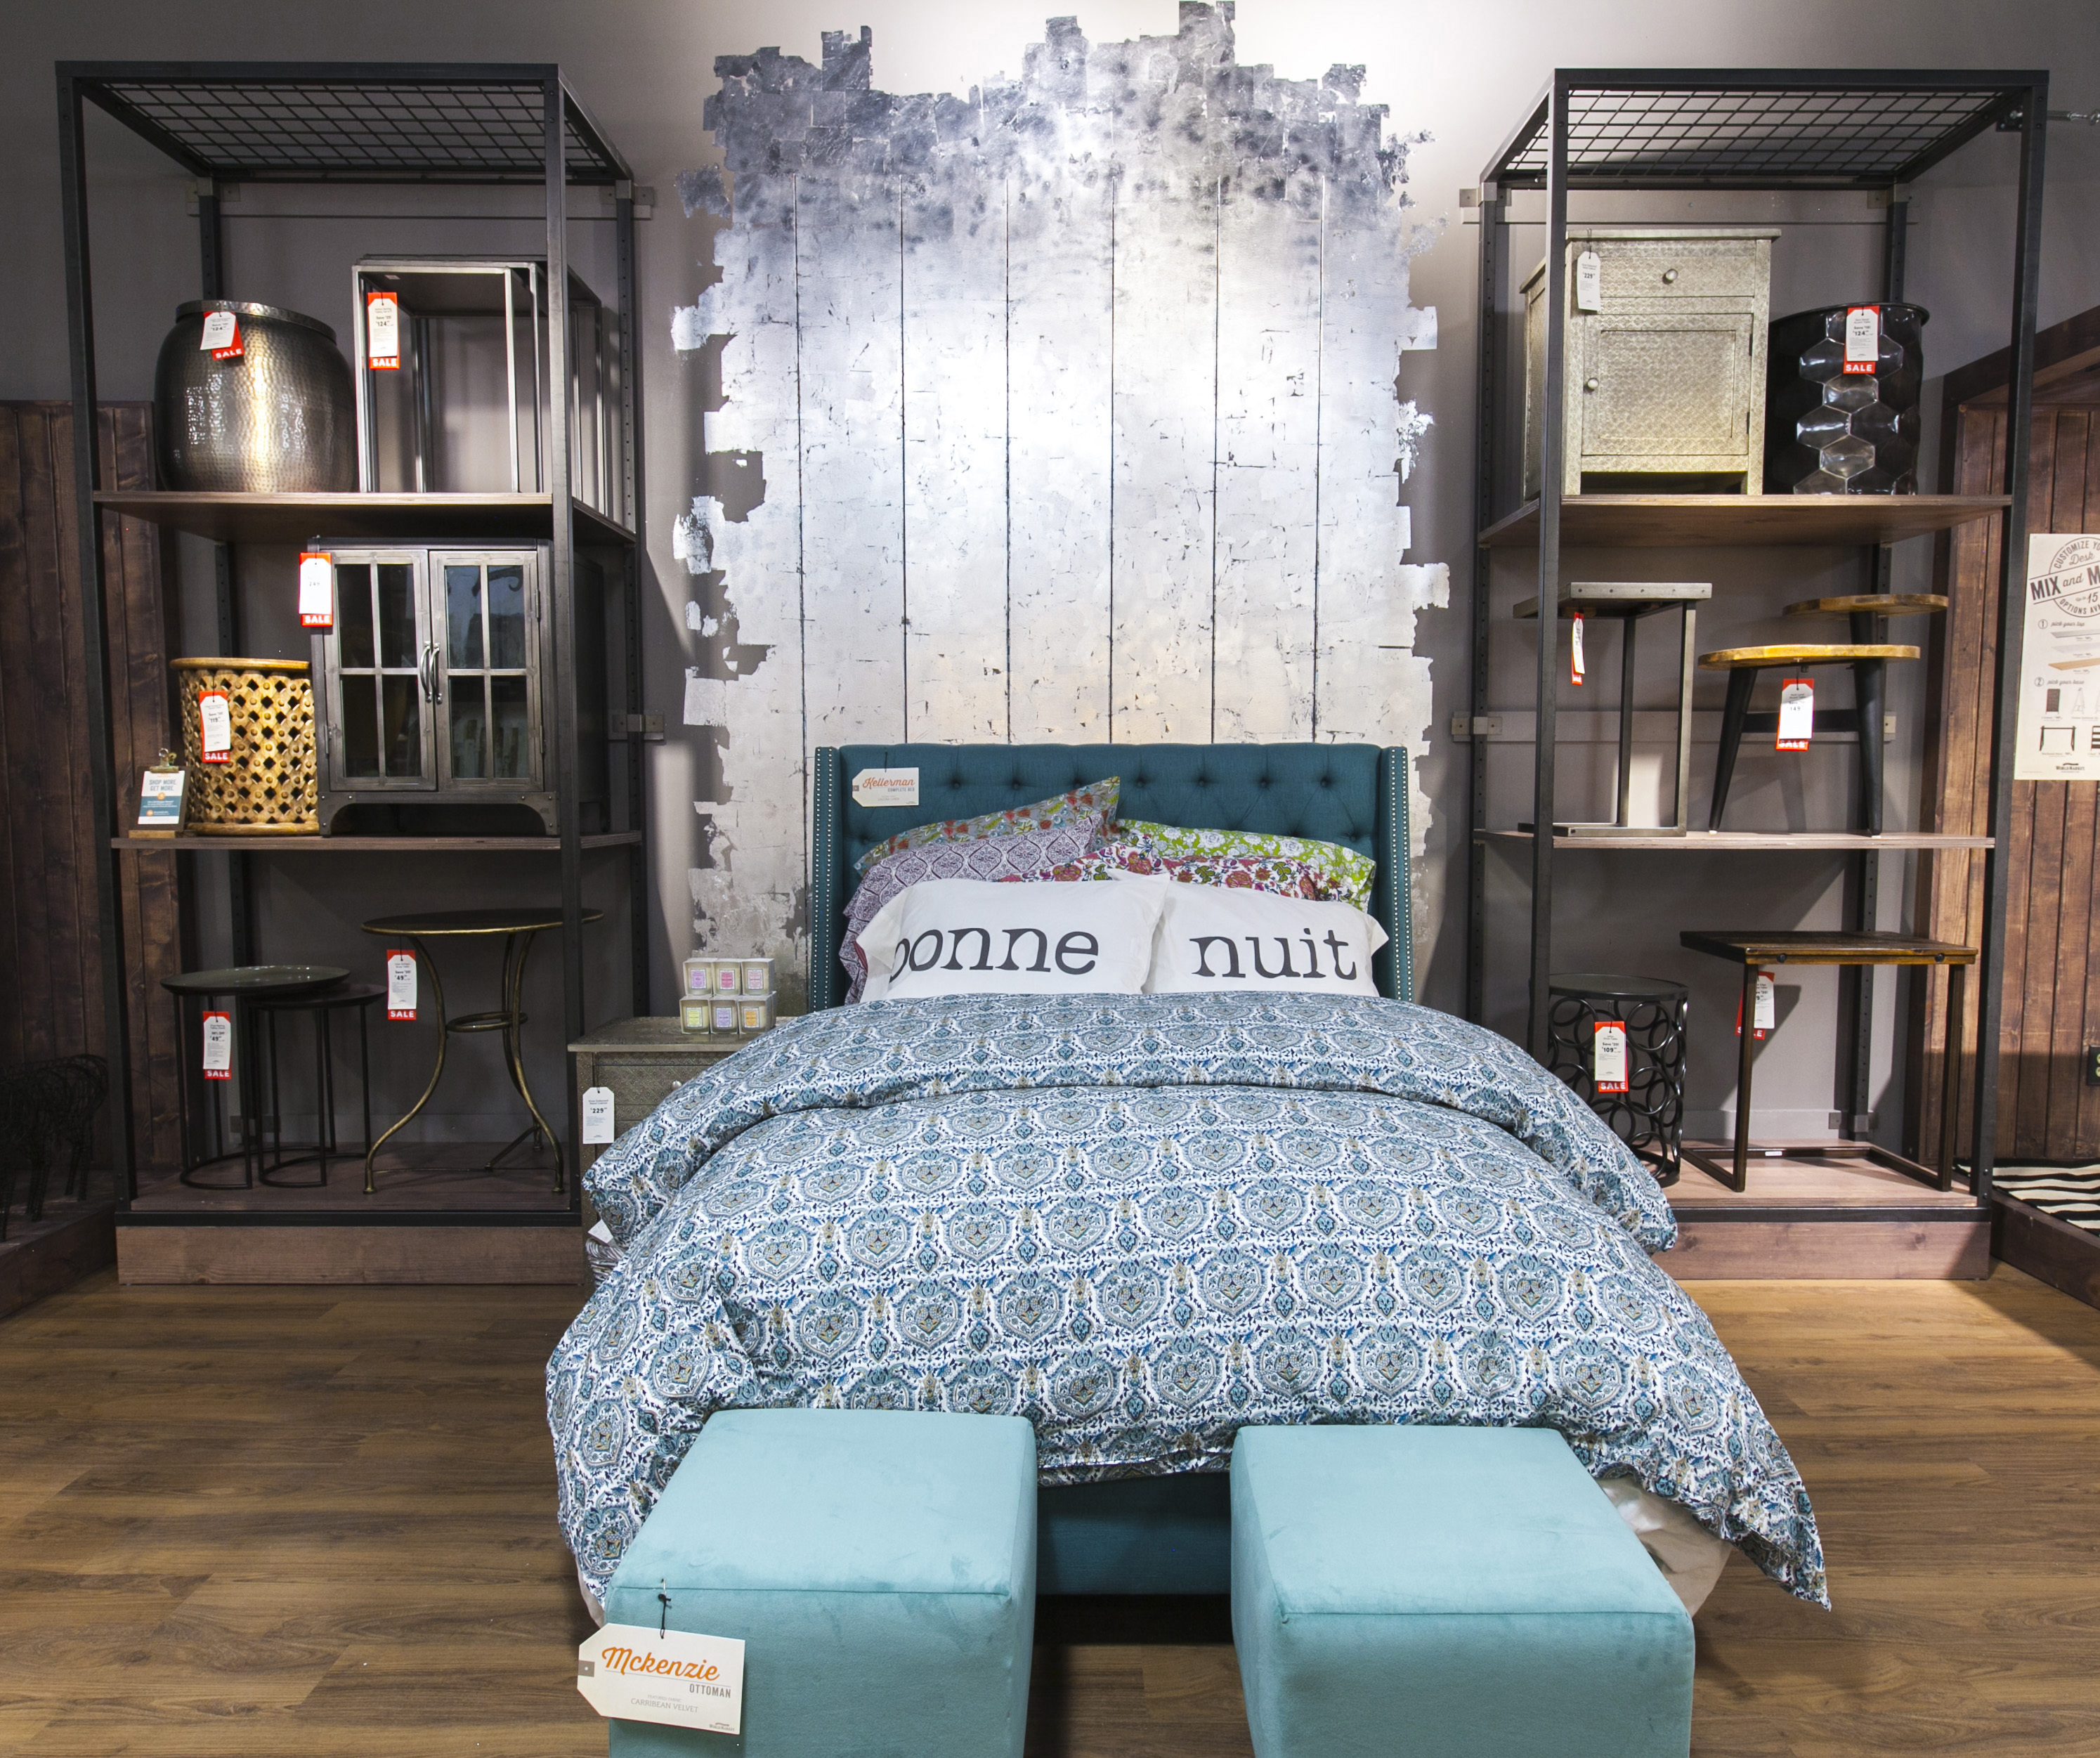 New York City Bedroom Furniture Cost Plus World Marketar Grand Opens Its First New York City